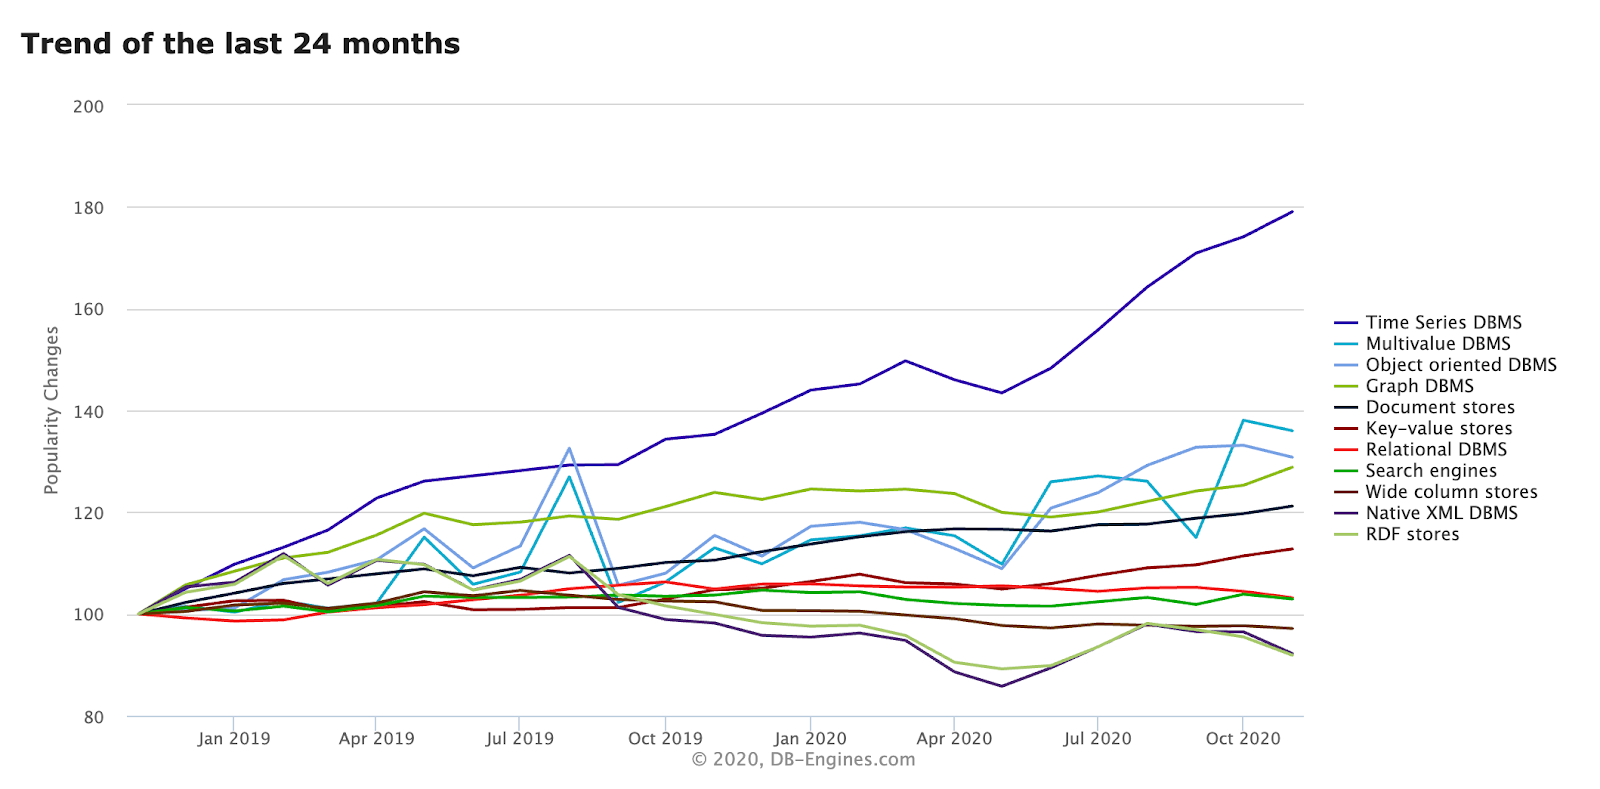 Time-series data, showing 24 month trend in DBMS popularity